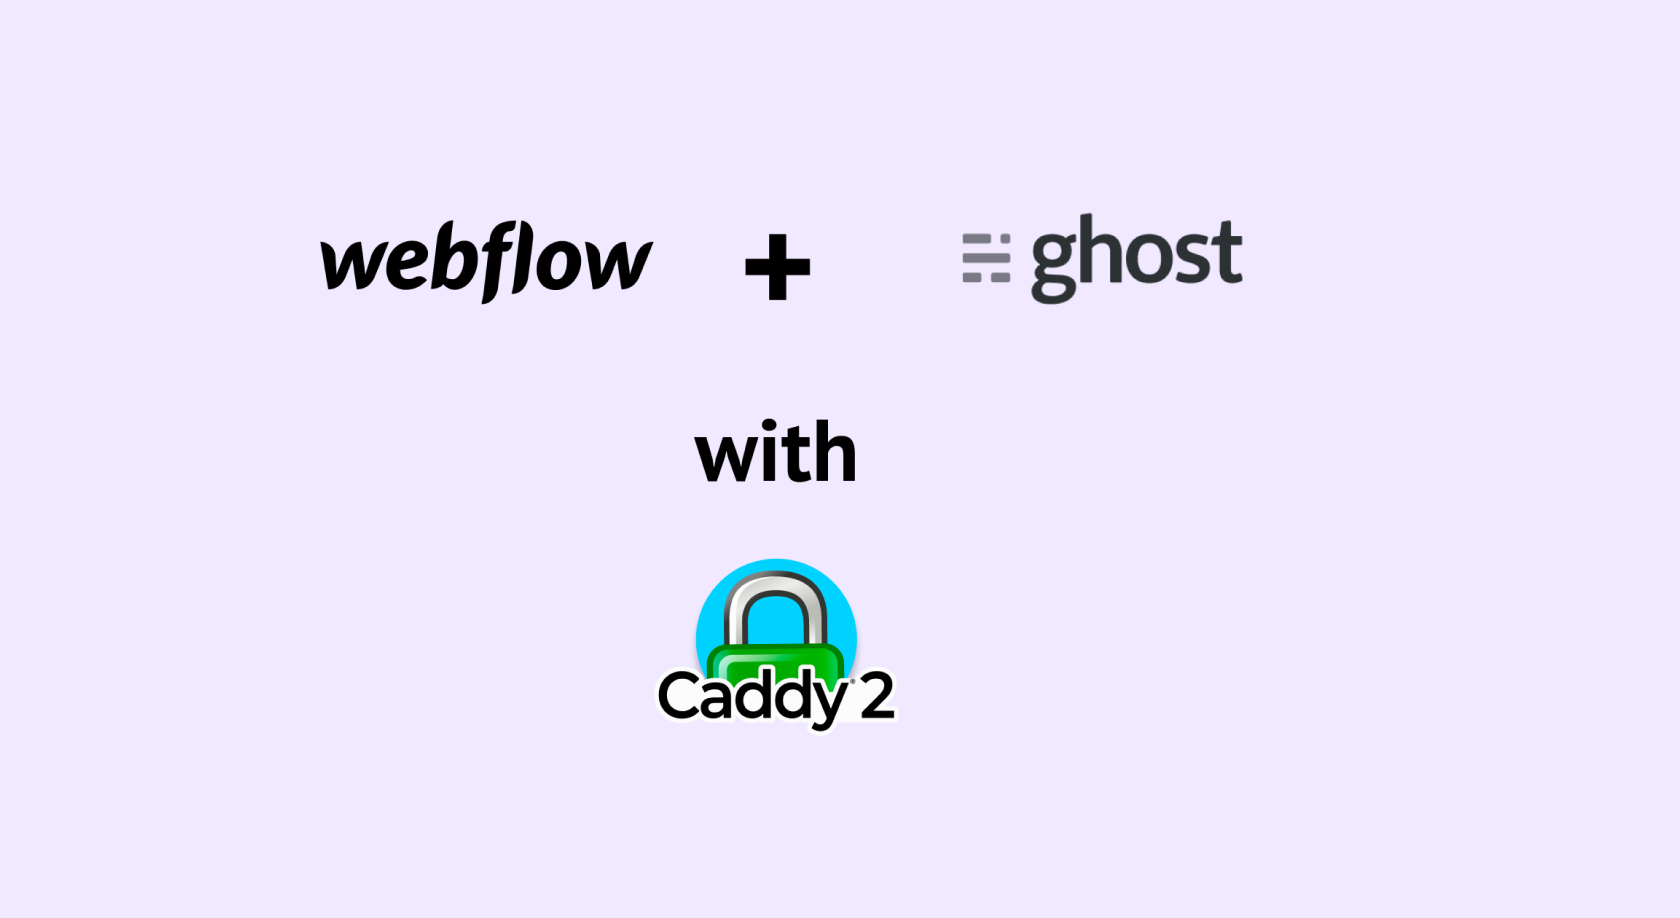 Webflow + selfserved Ghost blog with Caddy